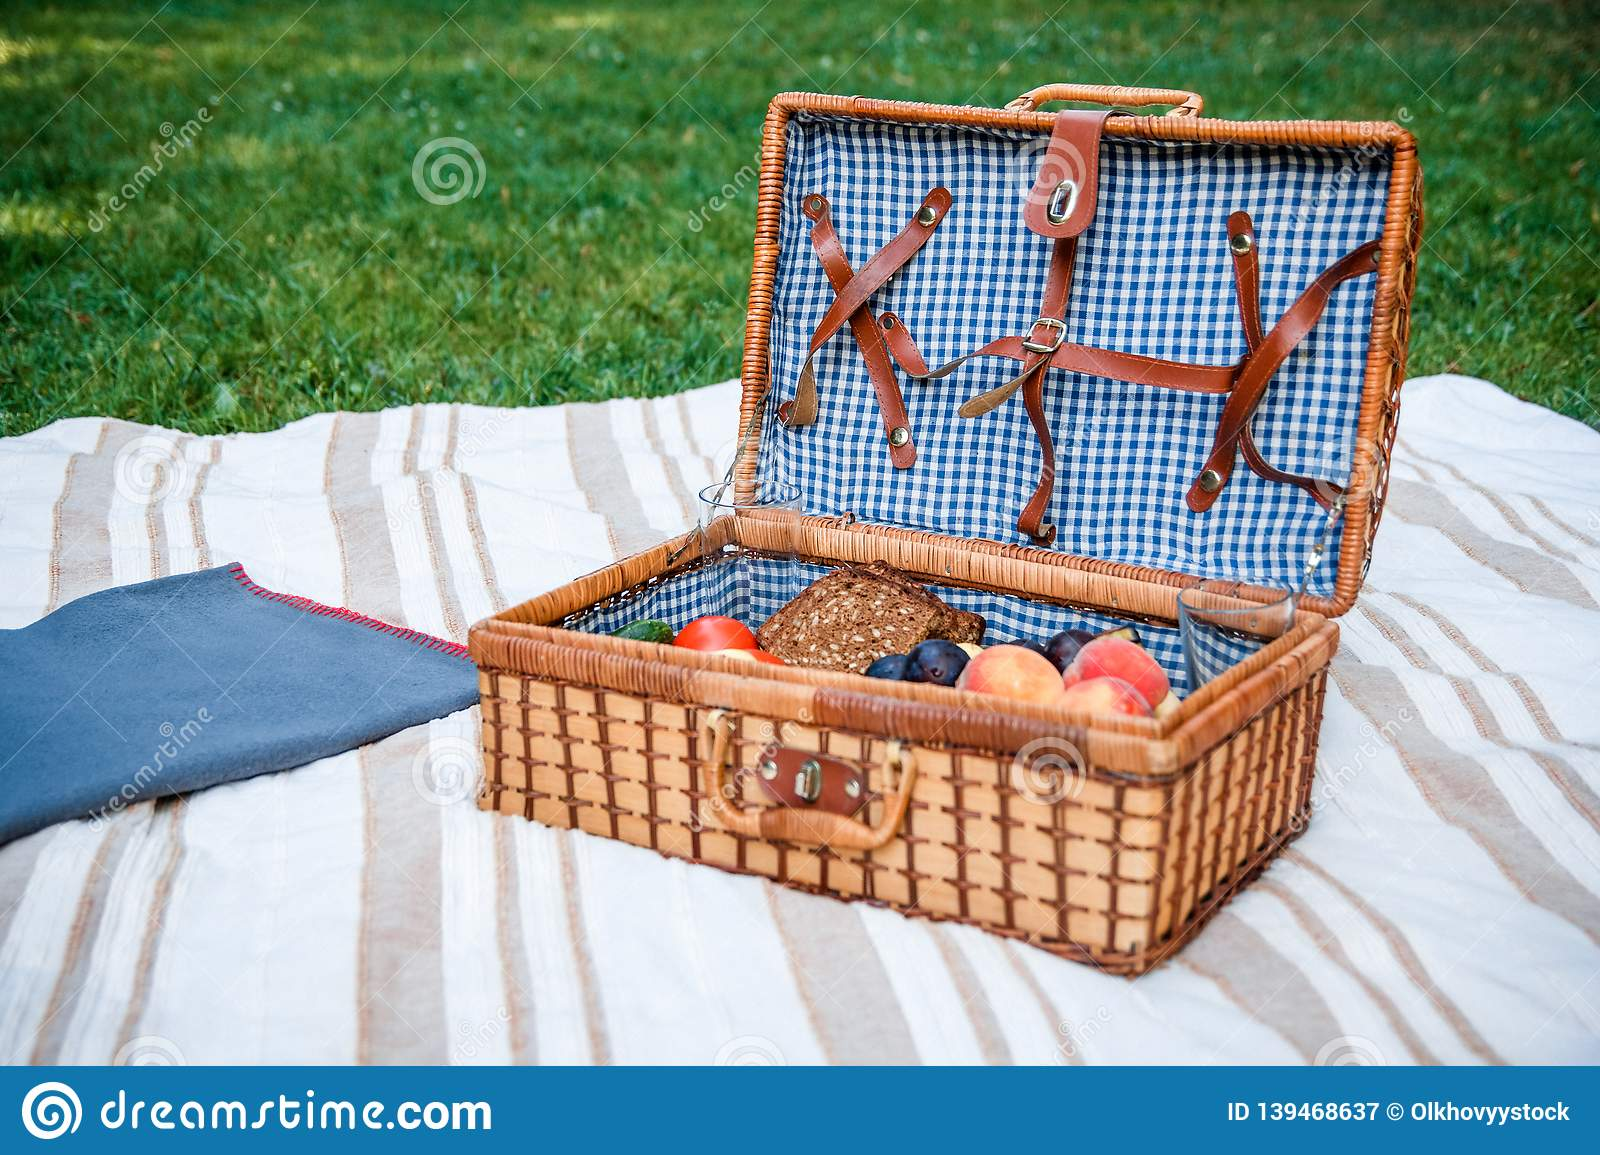 Picnic basket with fruits on the grass background